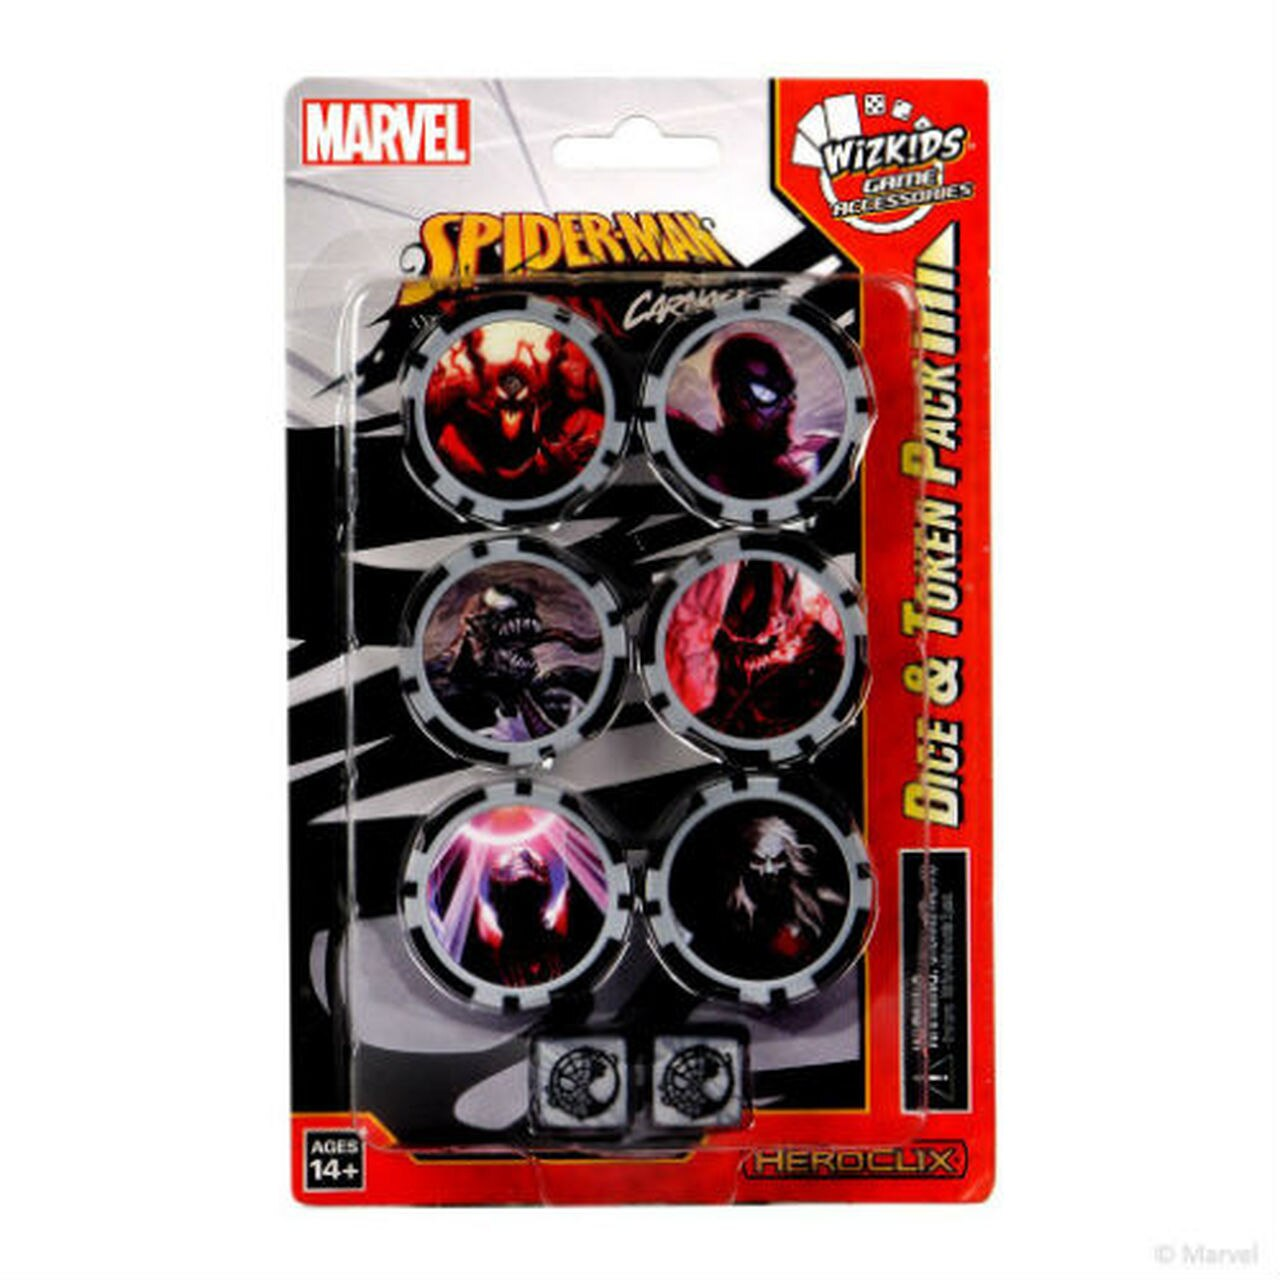 MARVEL HEROCLIX: SPIDER-MAN & VENOM ABSOLUTE CARNAGE DICE & TOKEN PACK | All About Games